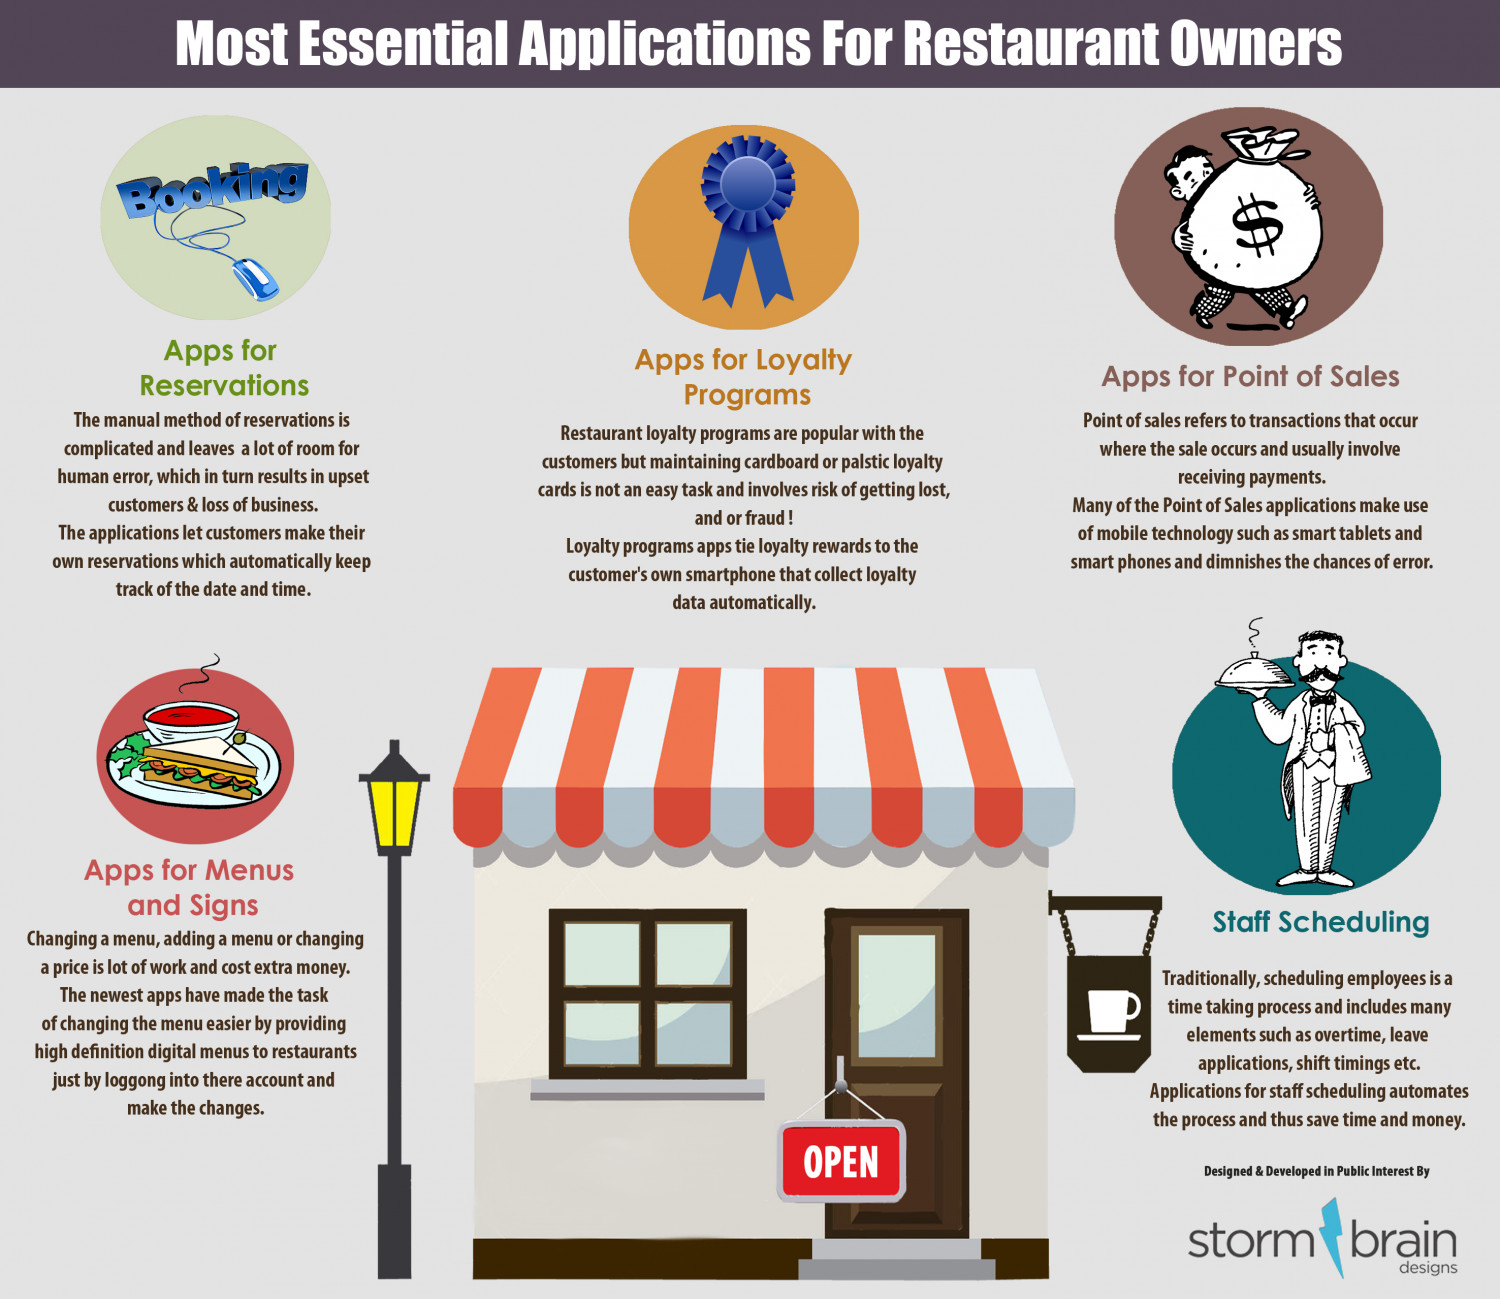 Most Essential Applications for Restaurant Owners Infographic